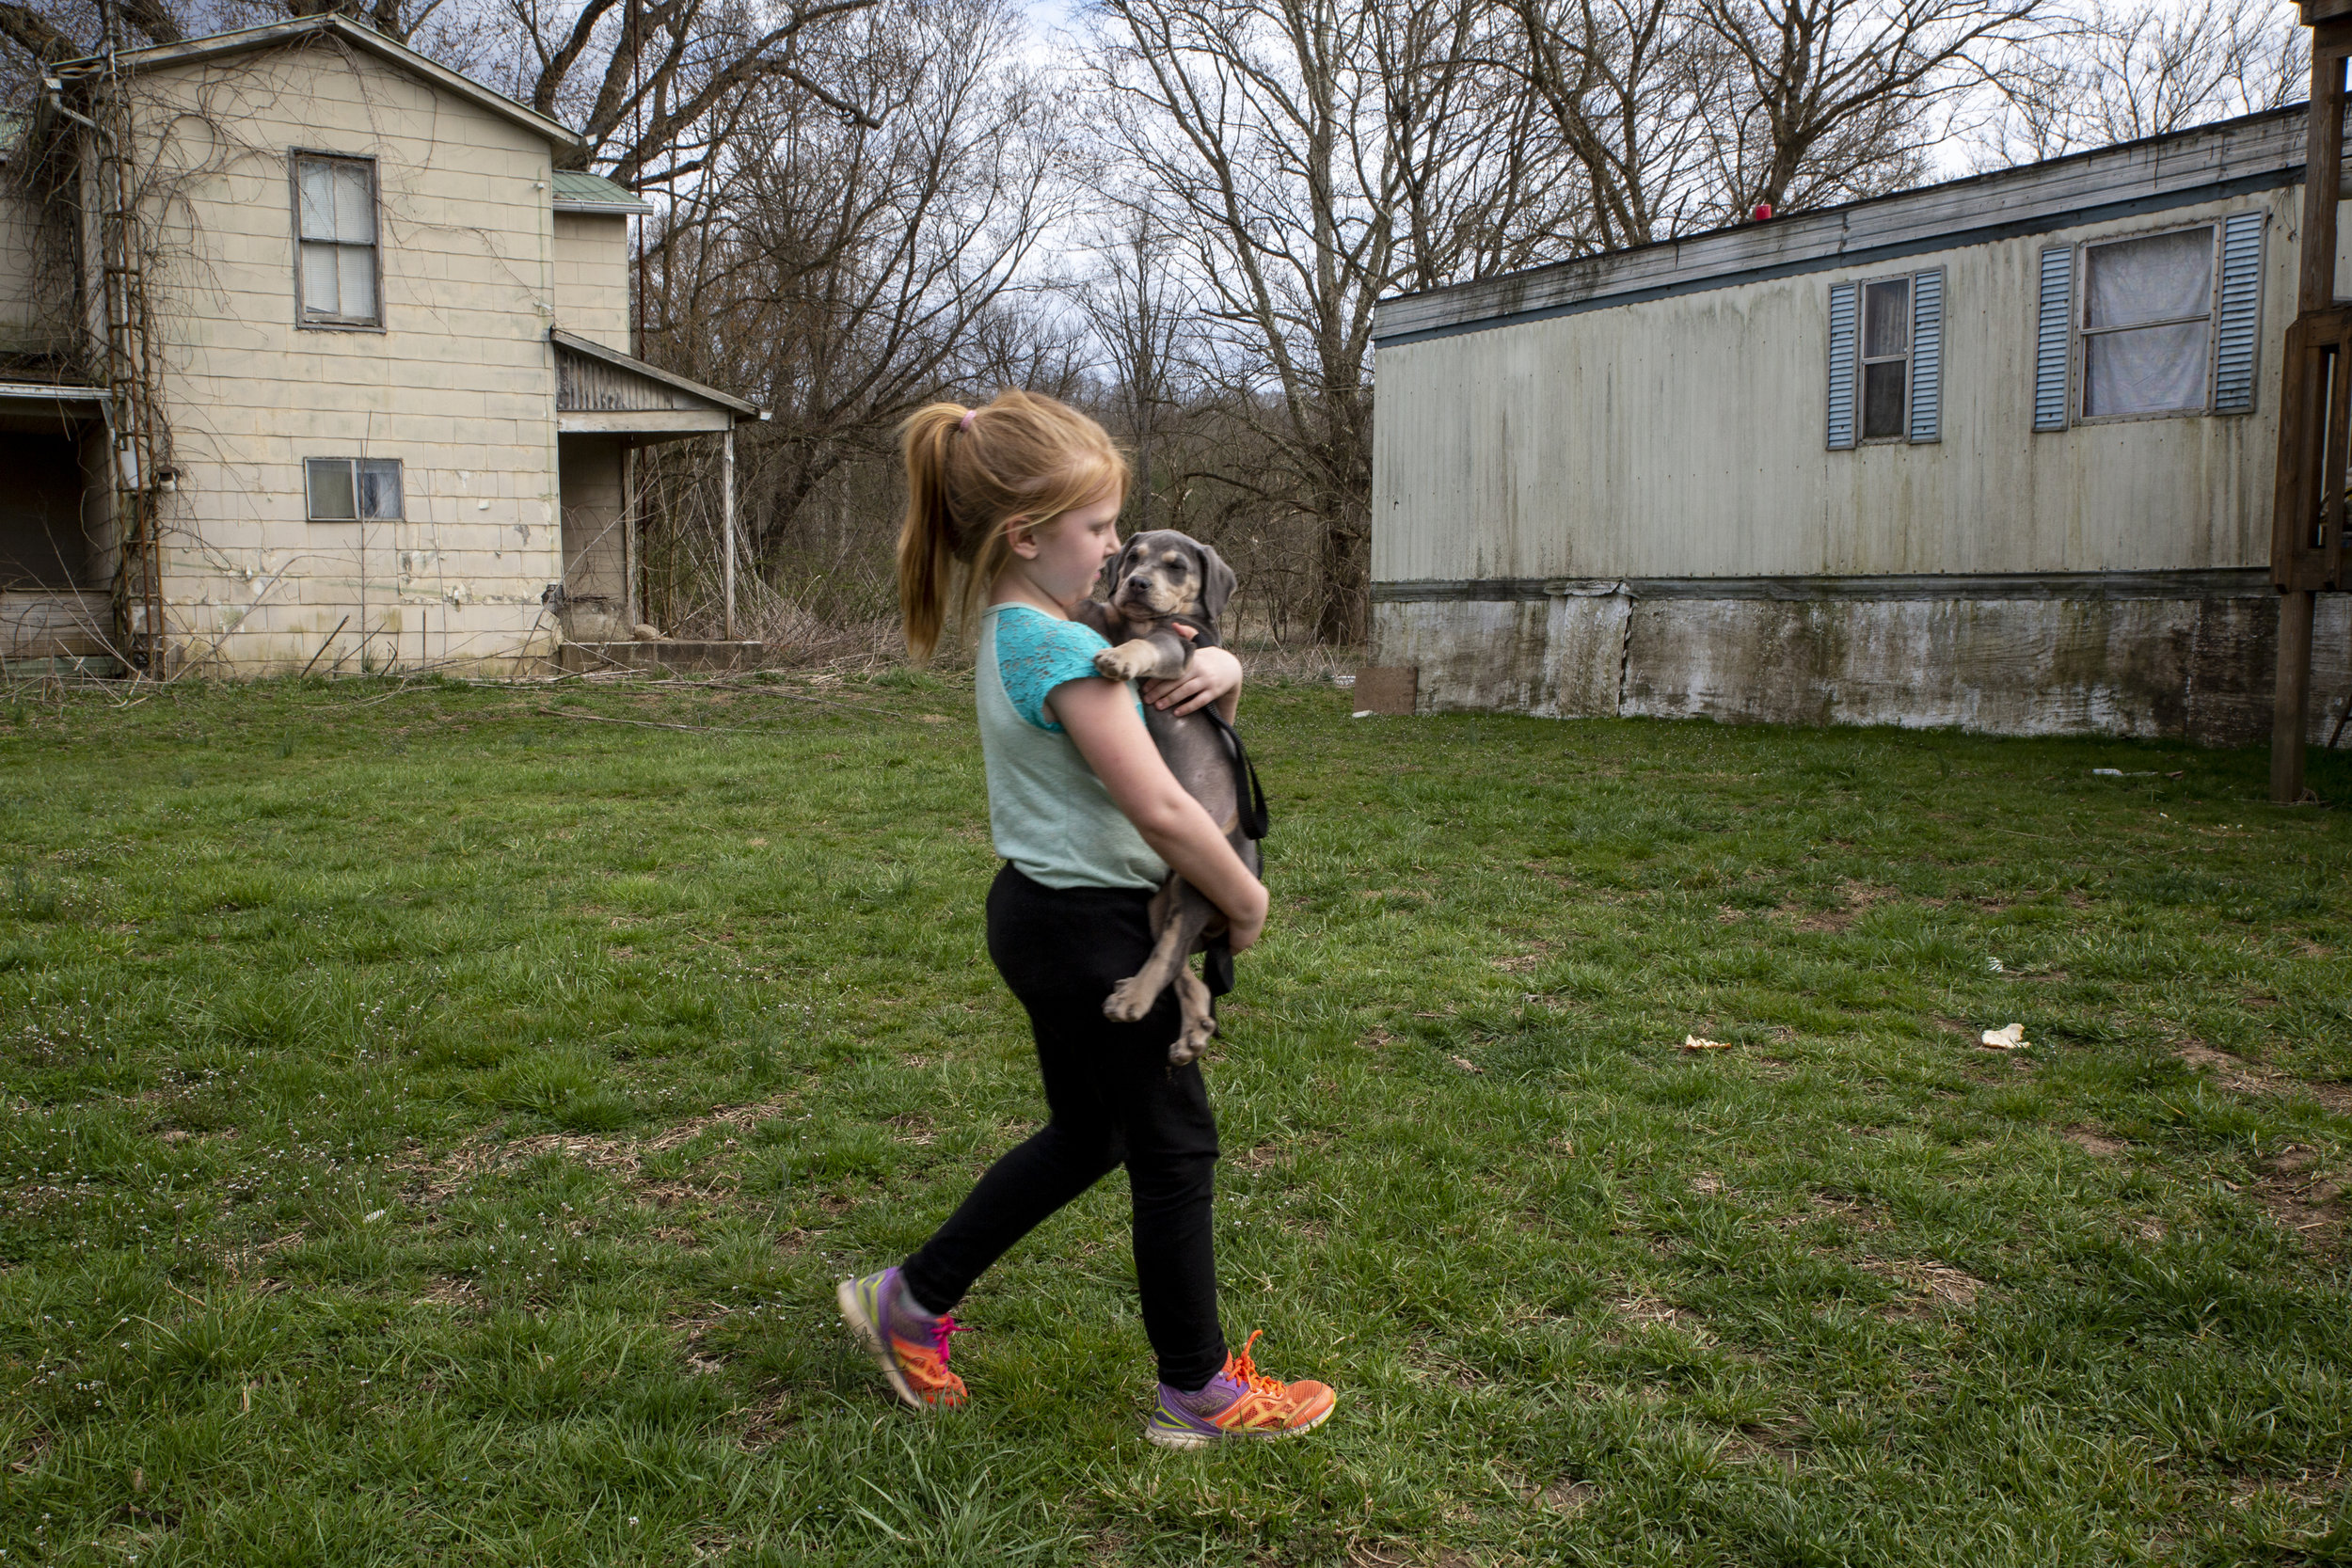 Brooklyn Roof, 6, walks toward her family's trailer holding their new puppy, Chocolate. Many of the community's oldest buildings have been abandoned, but stand alongside the few remaining inhabited homes because it's costly to tear them down.